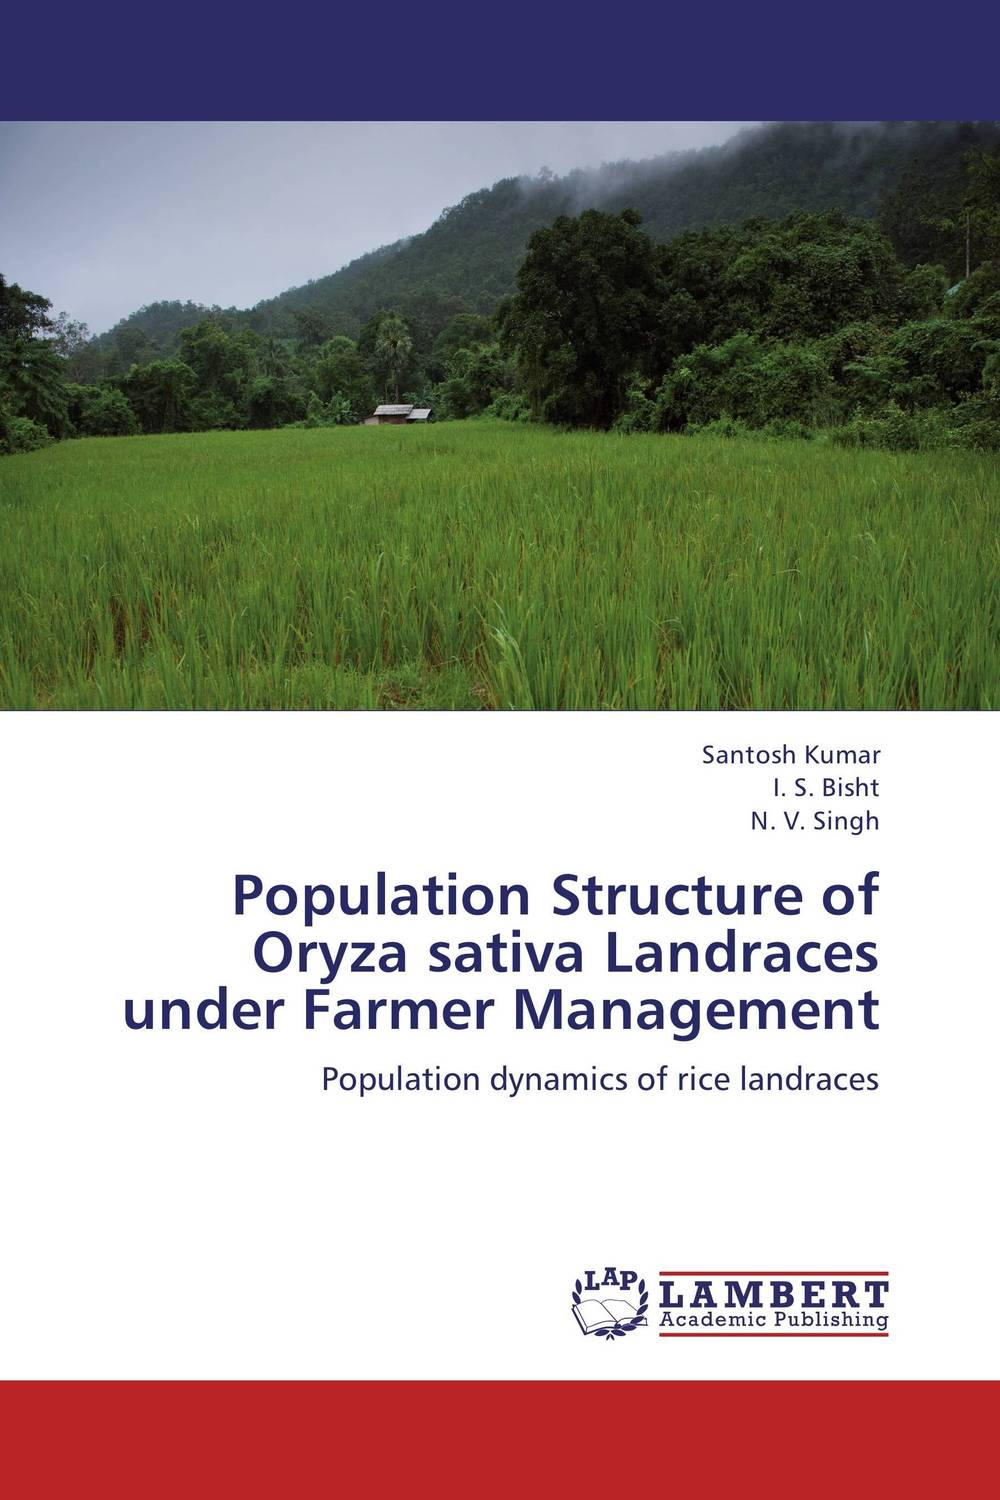 Population Structure of Oryza sativa Landraces under Farmer Management купить